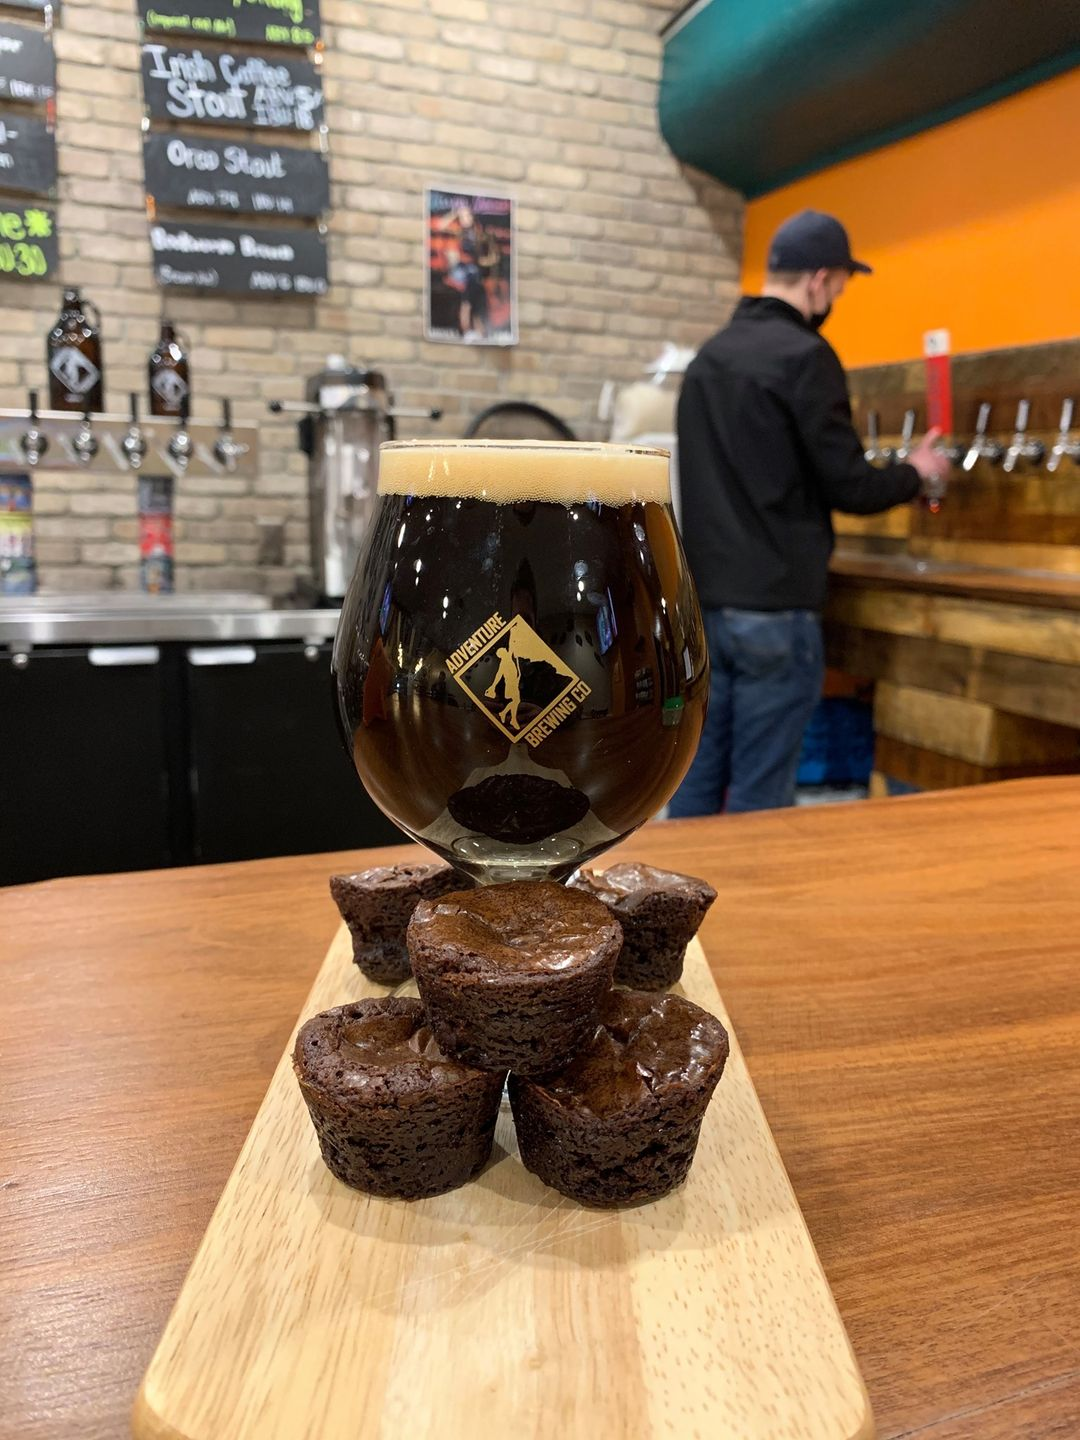 Stephen and Brownie Stout